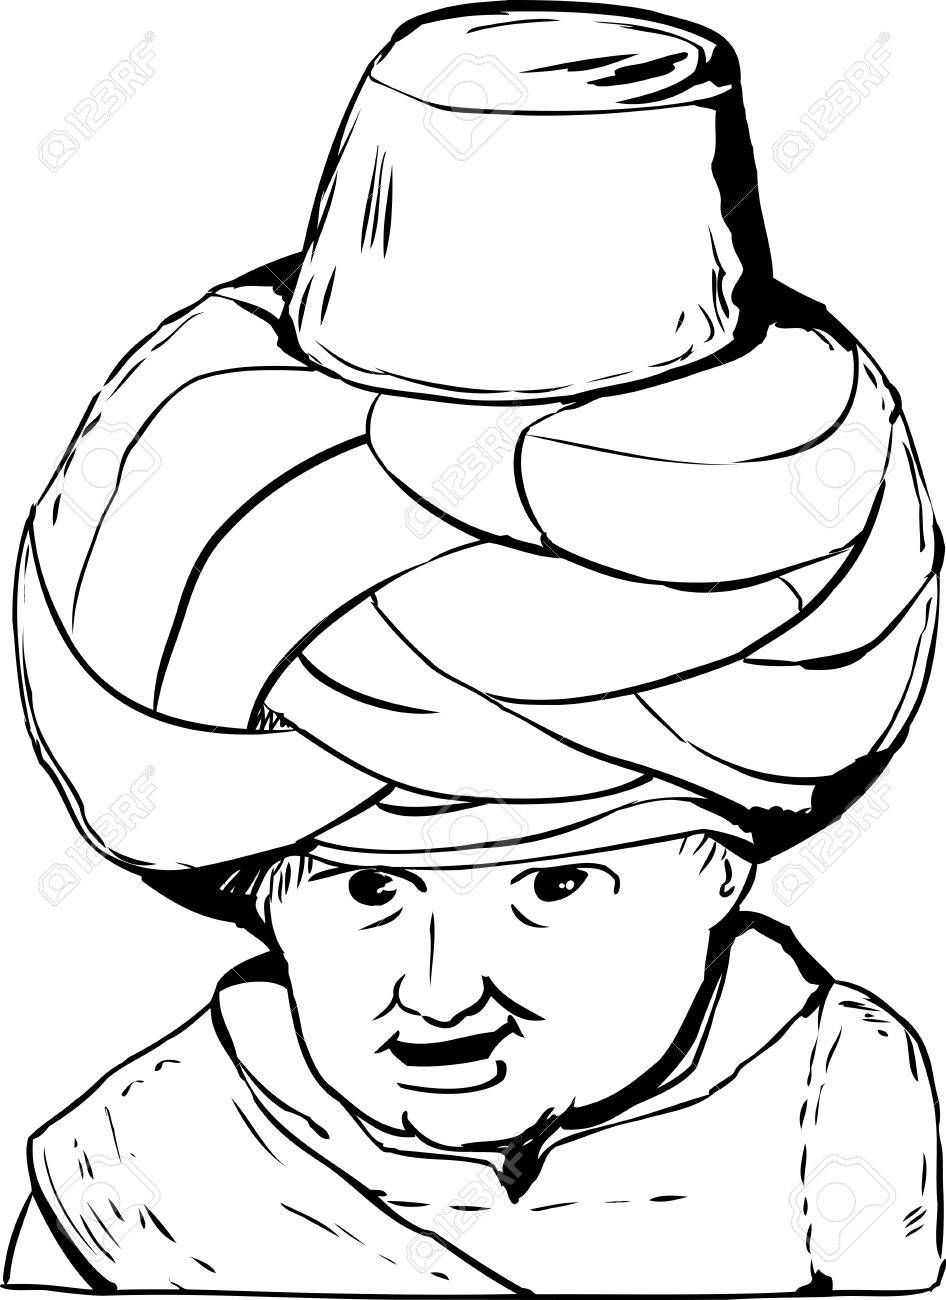 946x1300 Sketch Outline Close Up On Smiling Face Of 18th Century Arab